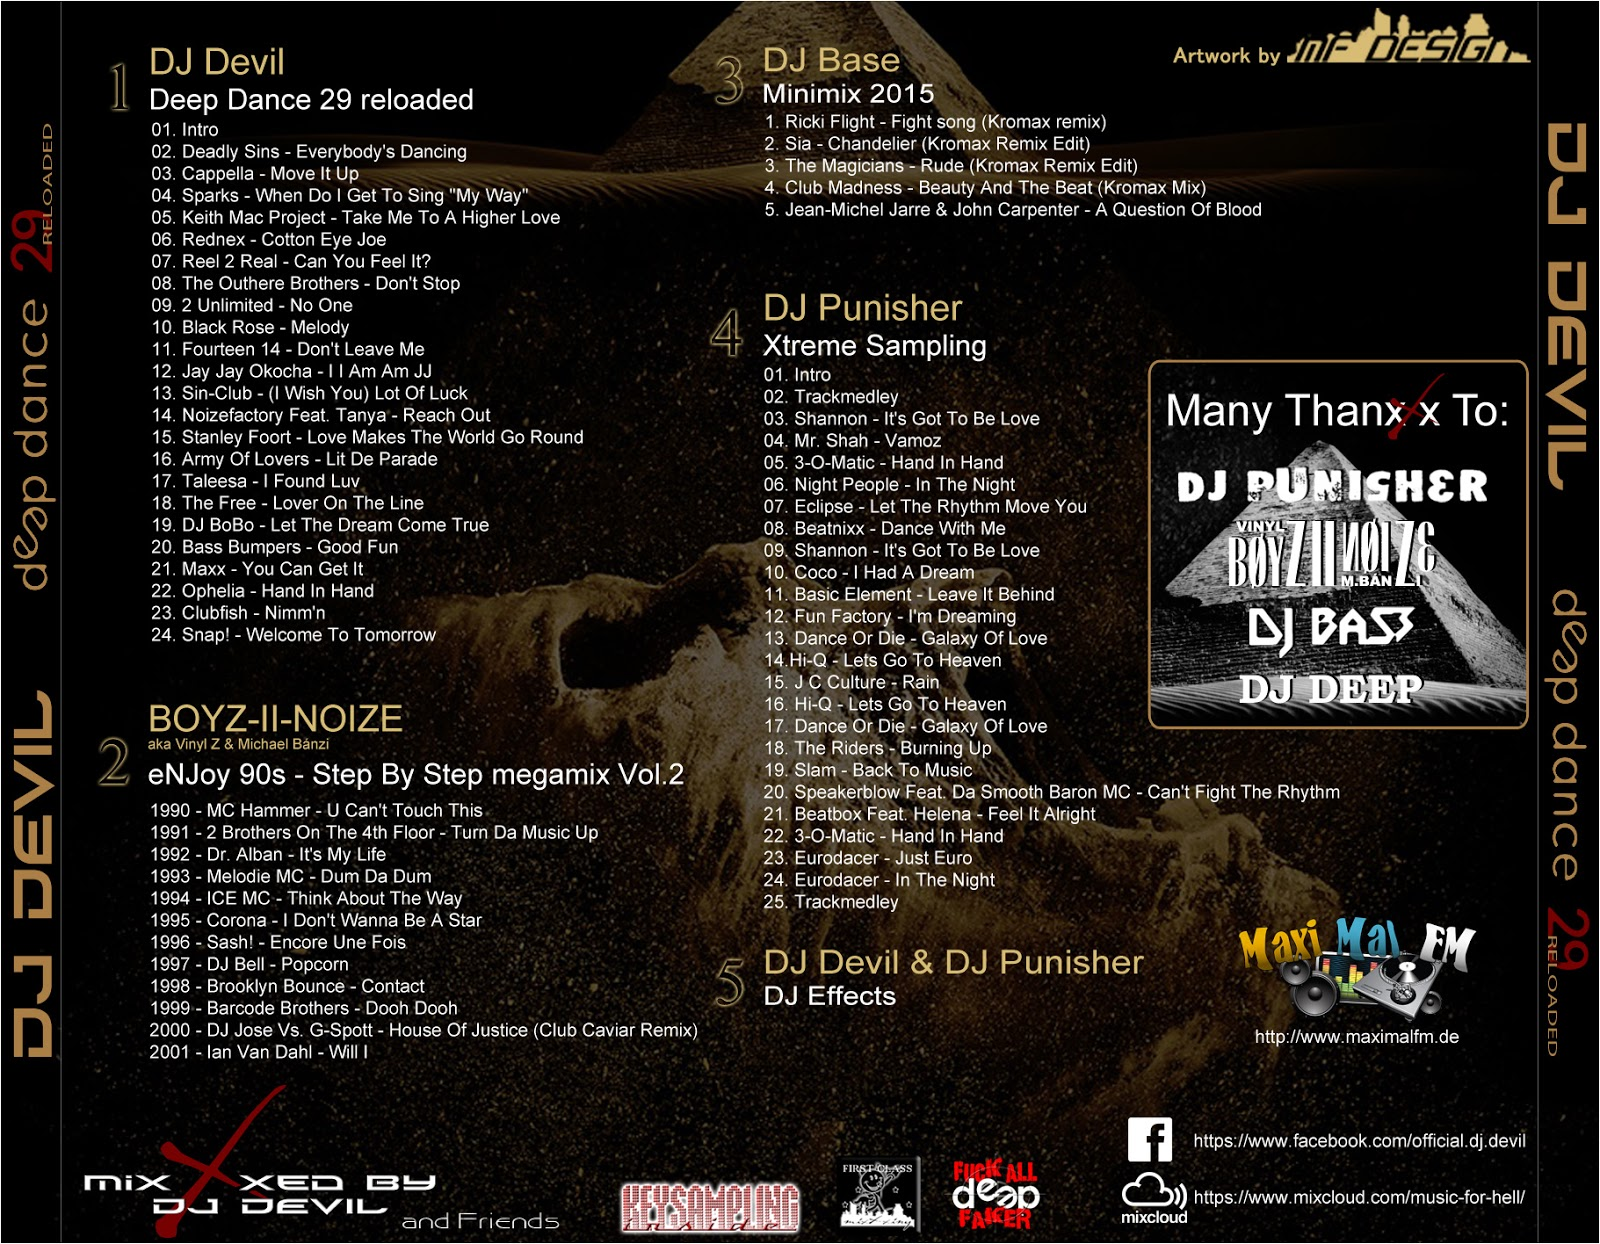 Dj Devil - Devil Dance 11 (Deep Dance Reloaded 29) Mixfreaks podcast